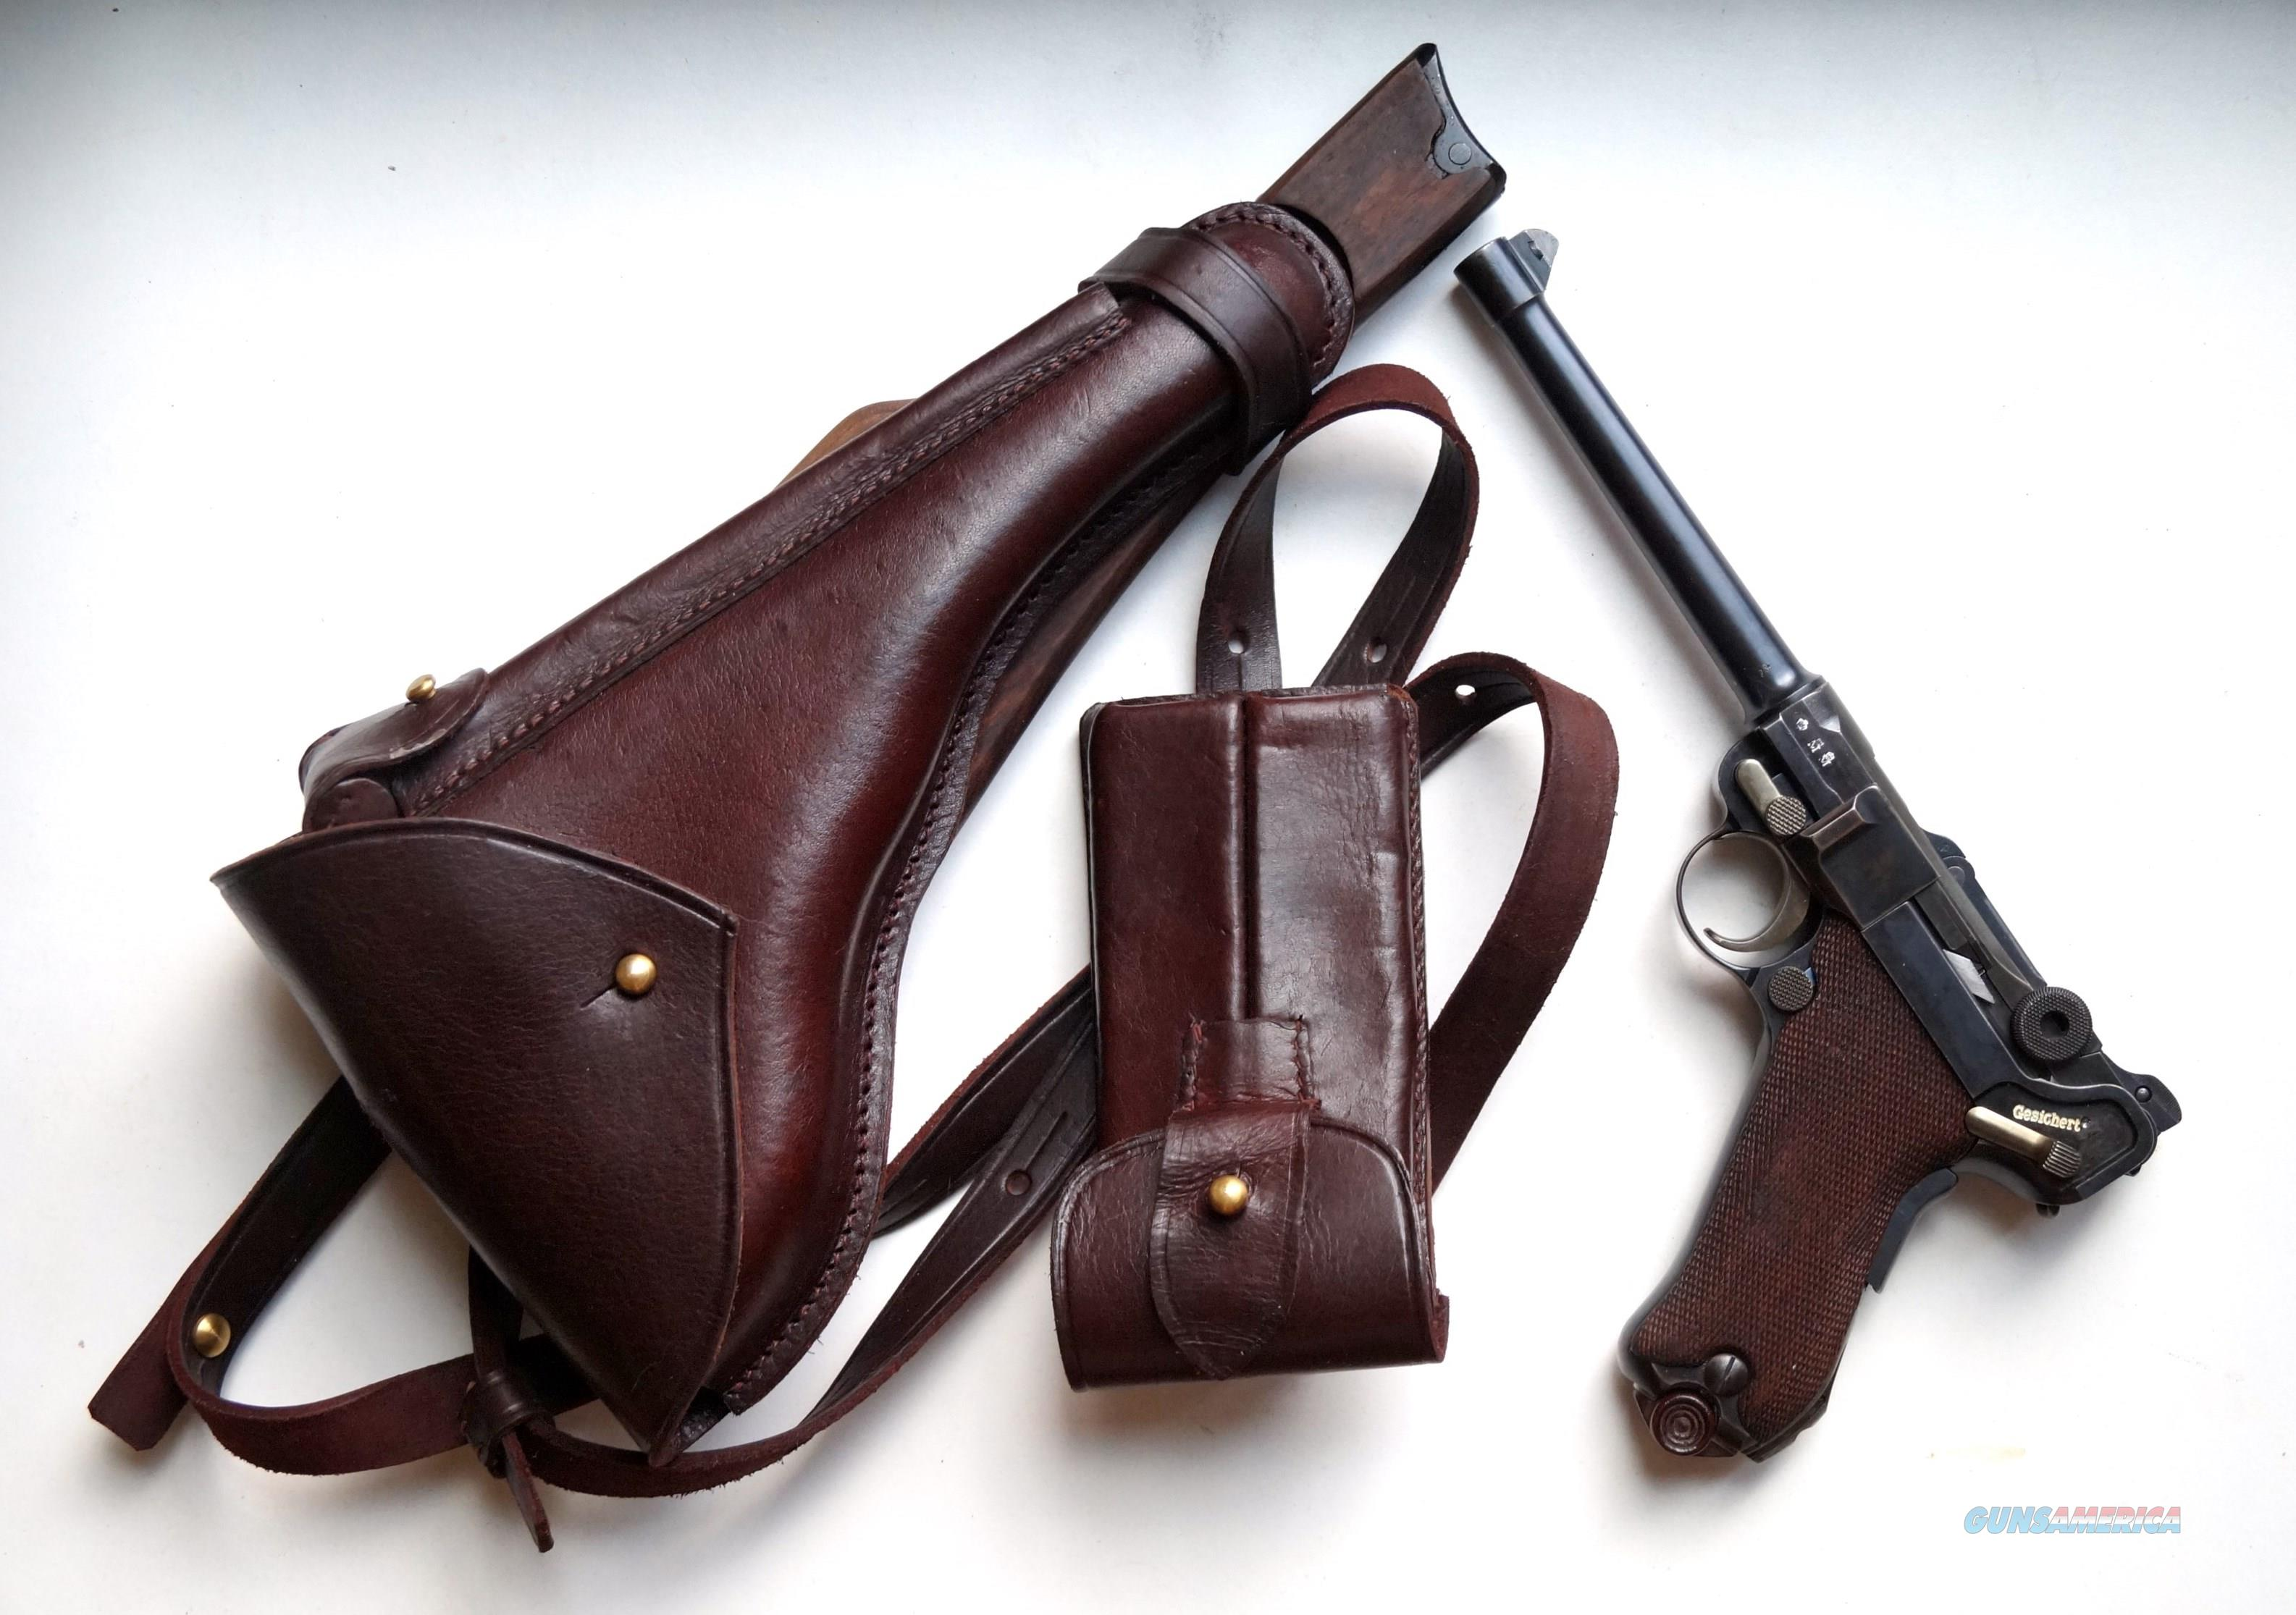 1914 ERFURT MILITARY ARTILLERY GERMAN LUGER RIG WITH MATCHING NUMBERED MAGAZINE  Guns > Pistols > Luger Pistols